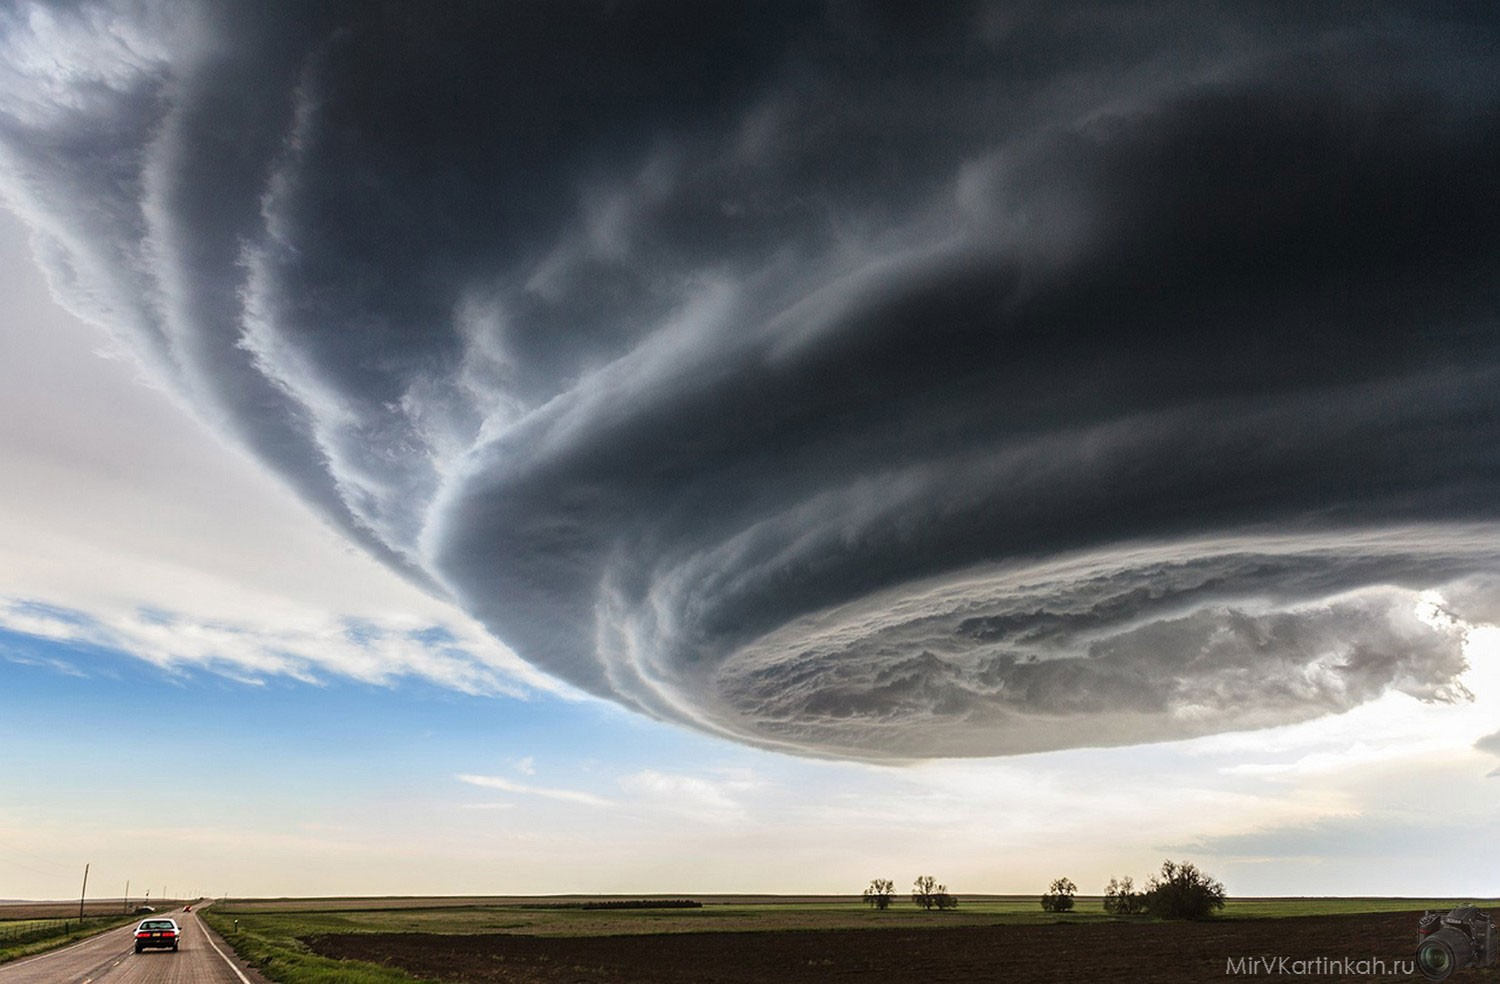 General 1500x984 clouds supercell (nature) storm nature landscape skyscape